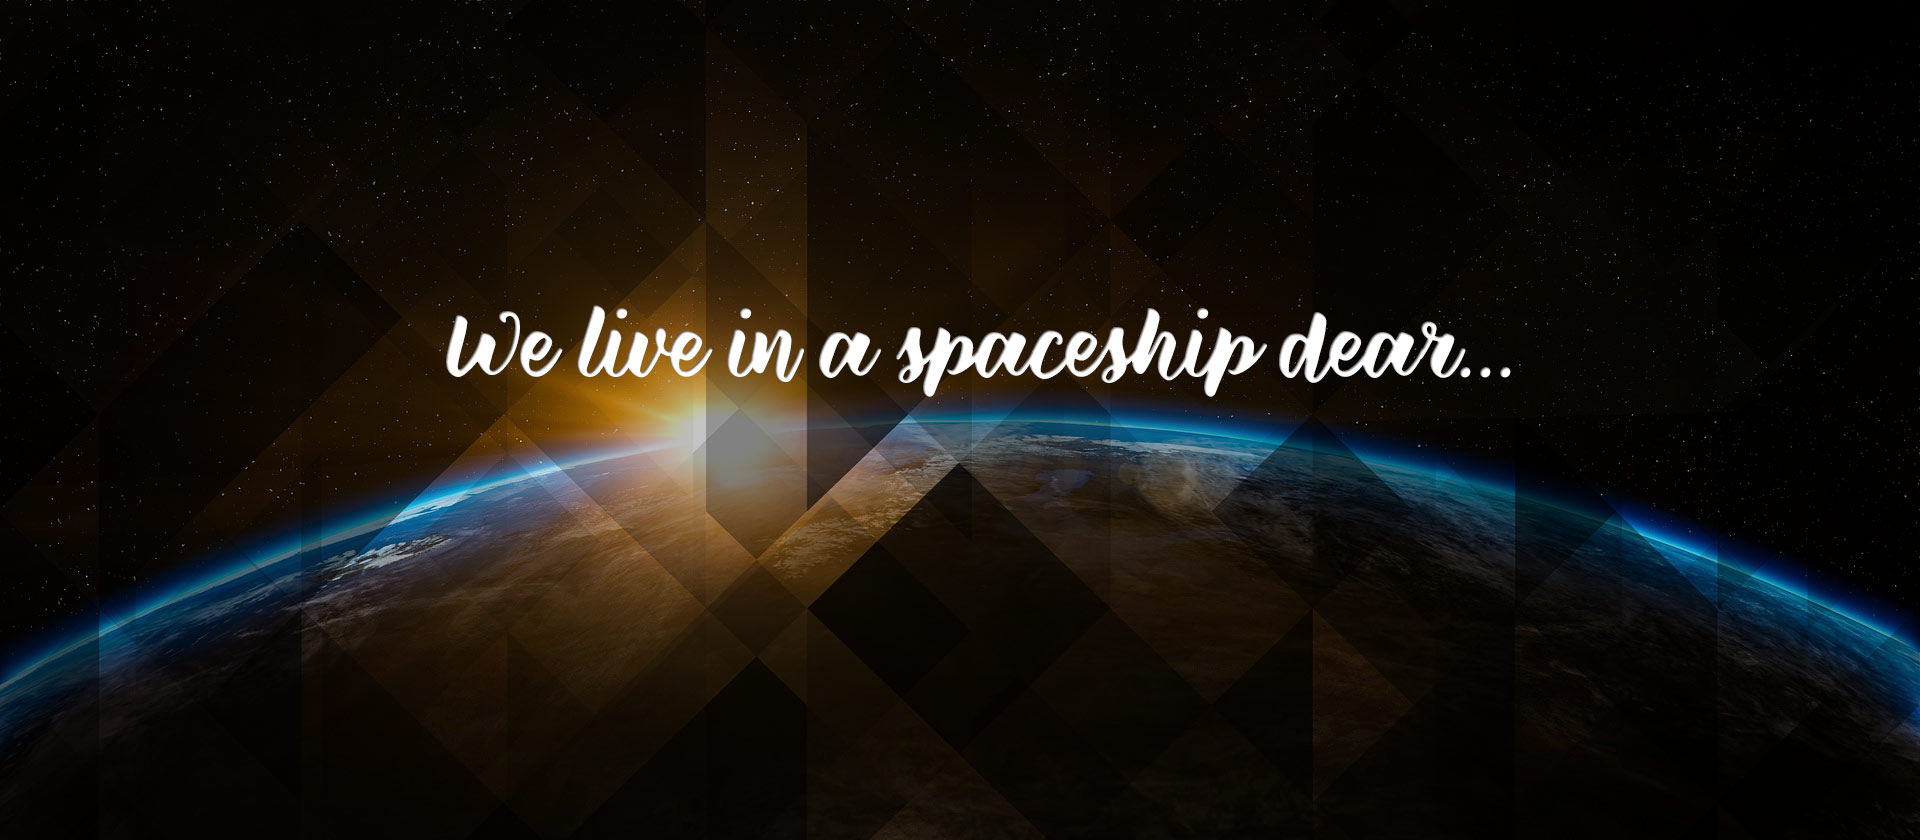 We Live in a Spaceship Dear